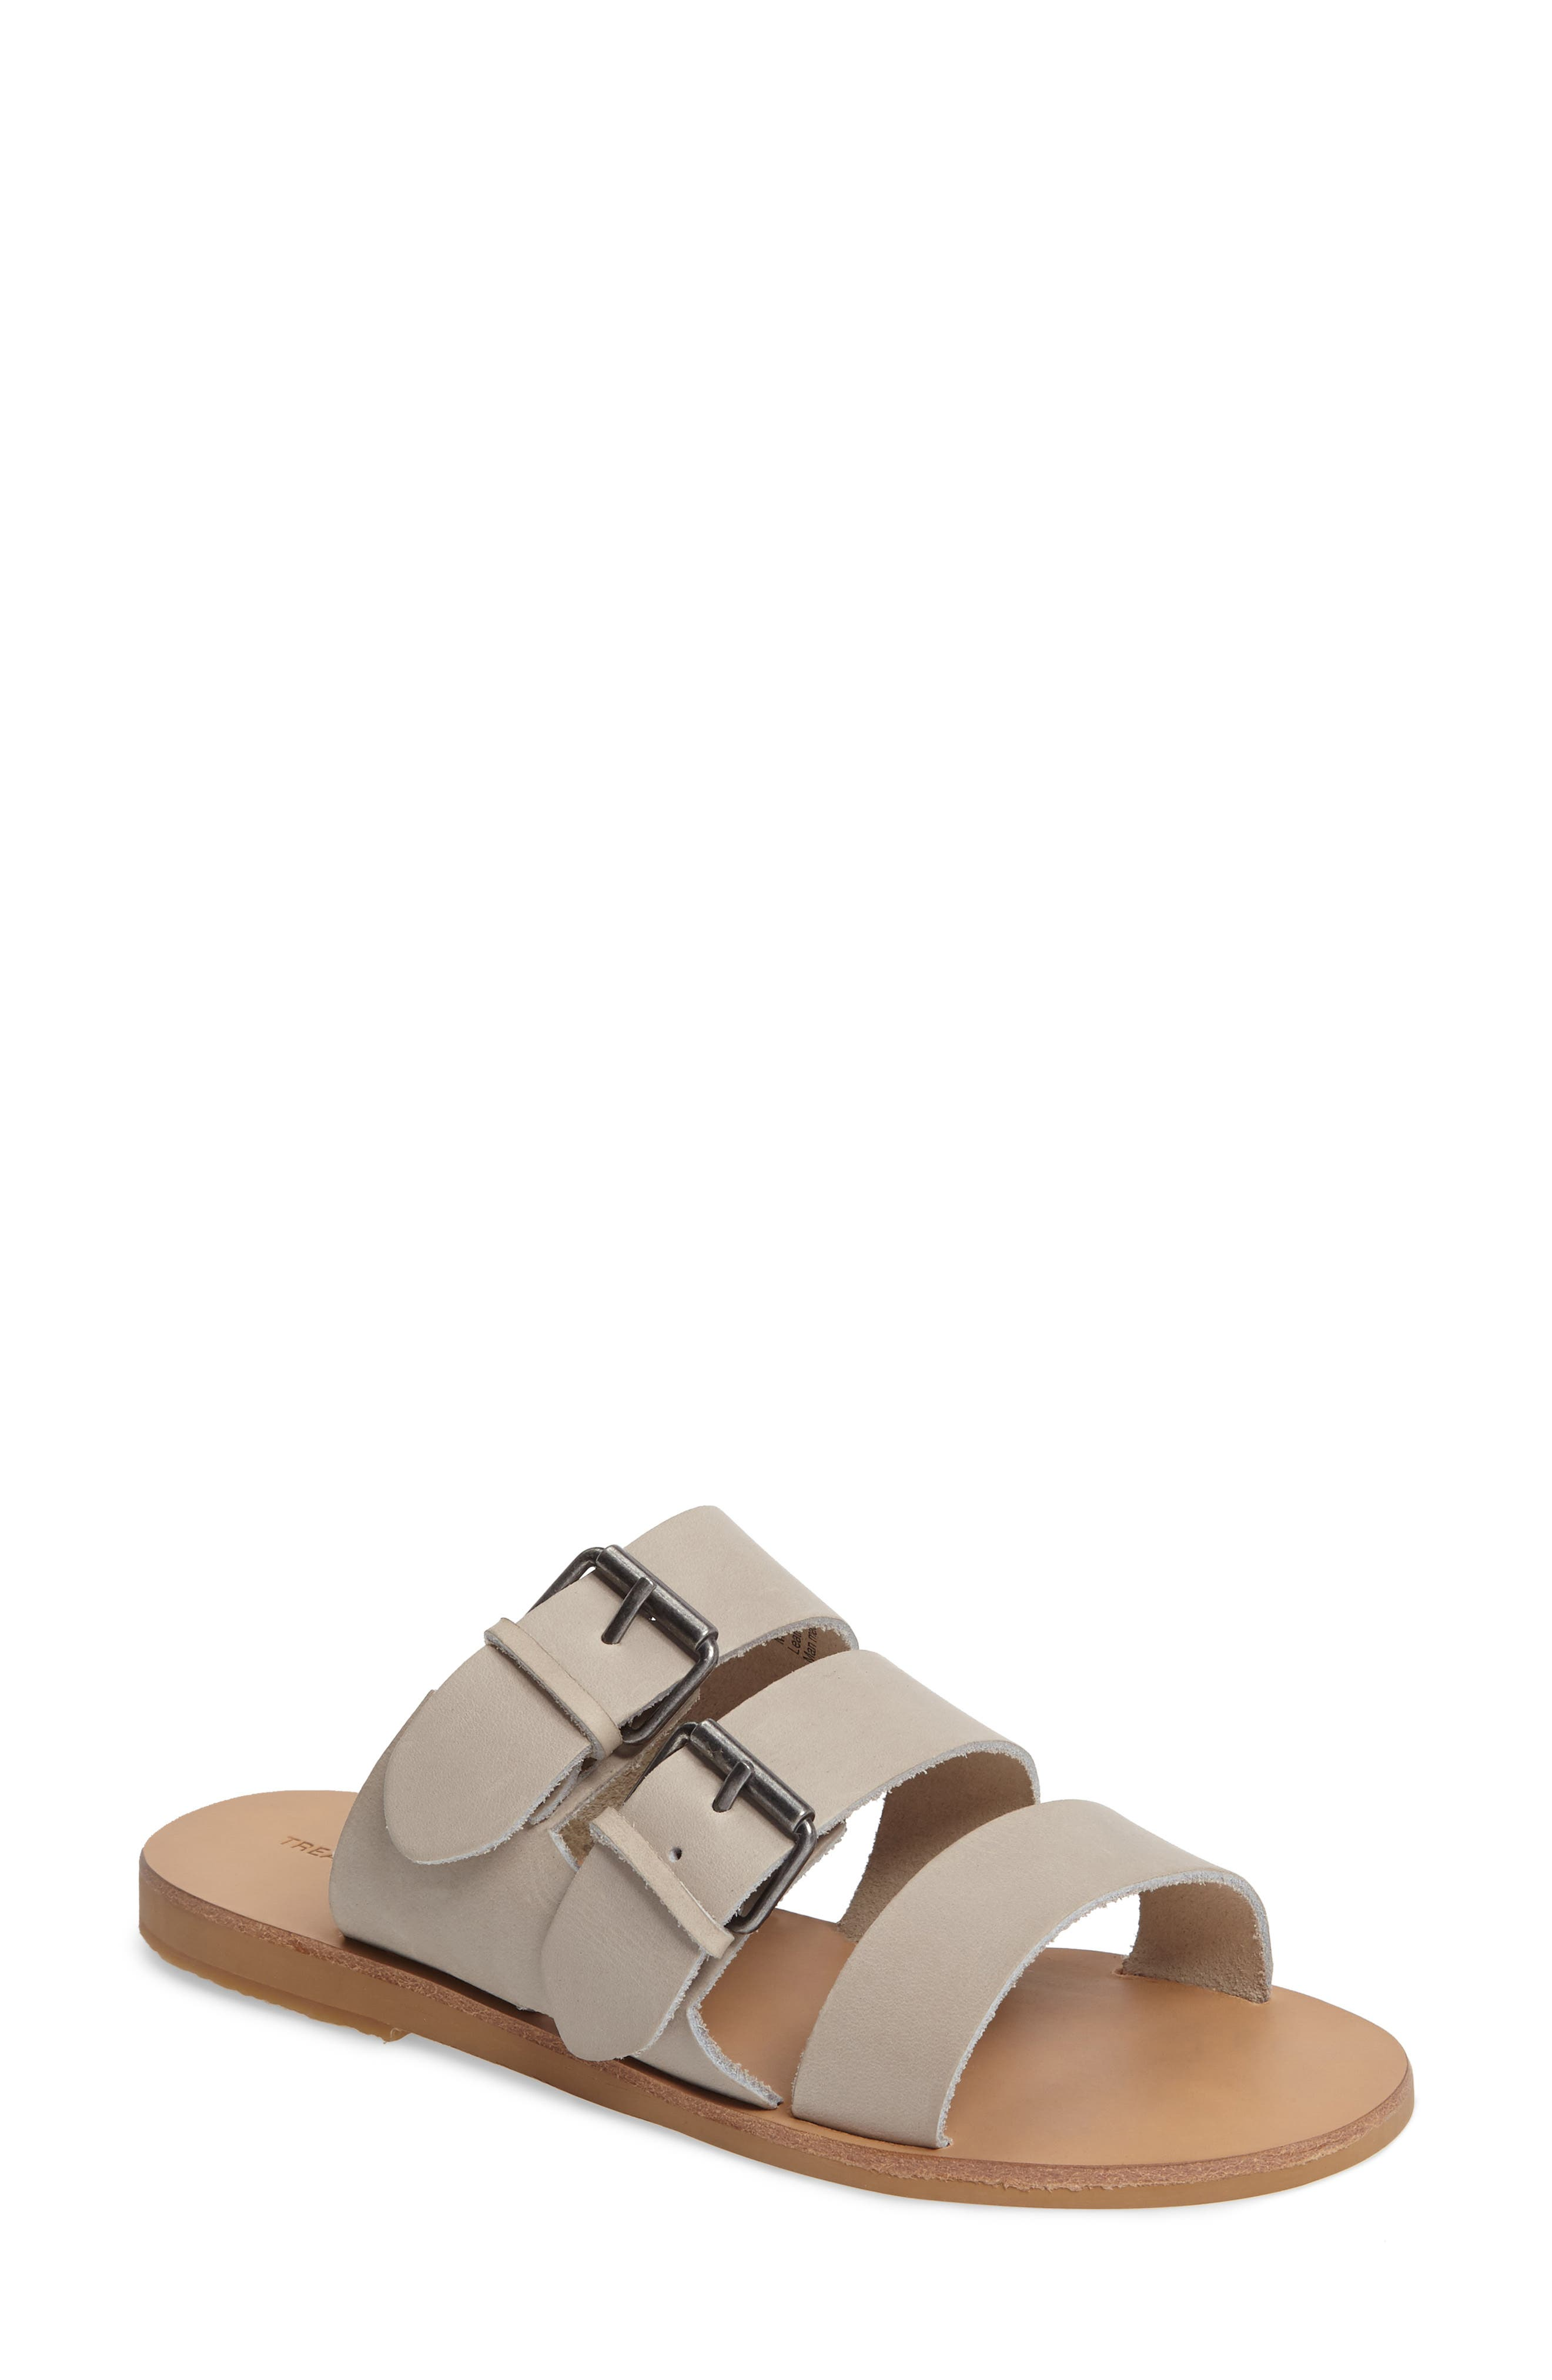 Treasure & Bond Decklan Sandal (Women)